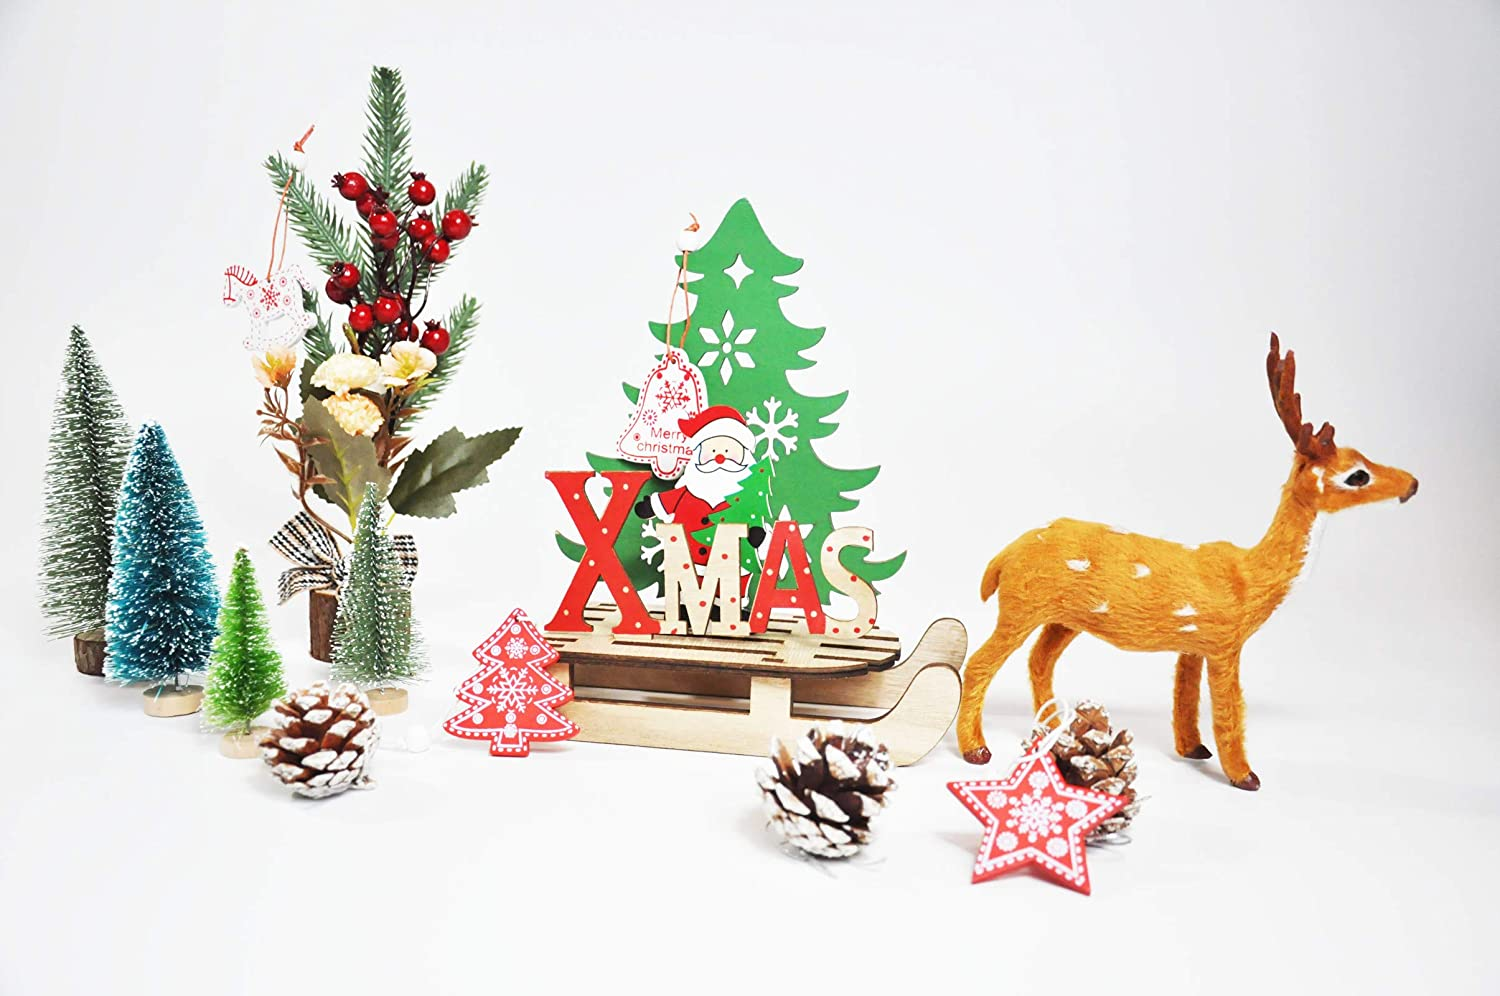 YOYOLIFE Christmas Decorations, Wooden Holiday Ornaments Christmas Tree, Santa Claus, Sleigh, elk 14-Piece Set, as and Holiday Tabletop